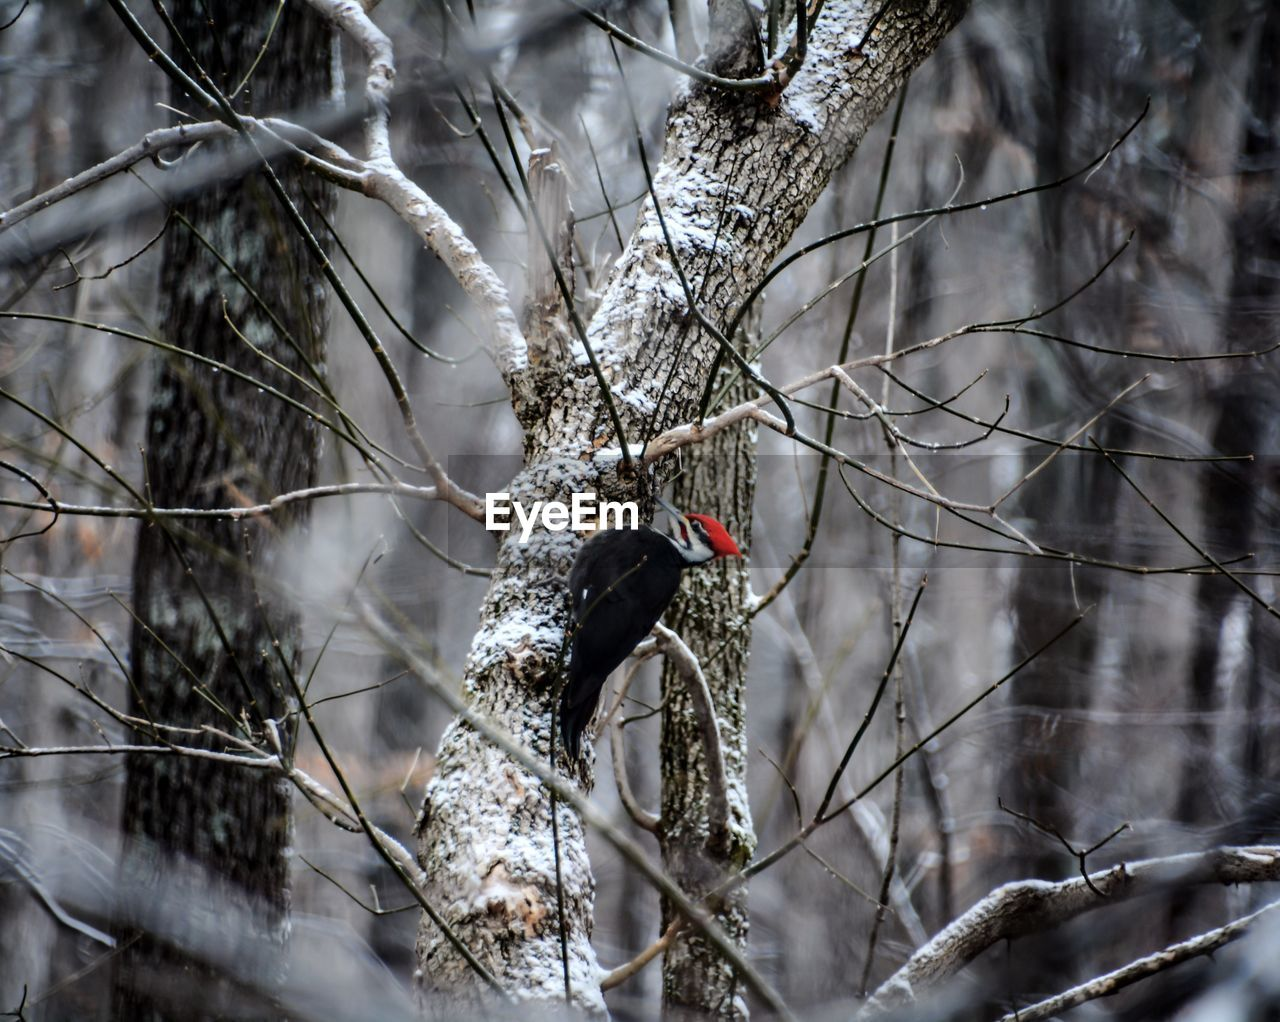 Woodpecker on tree during winter